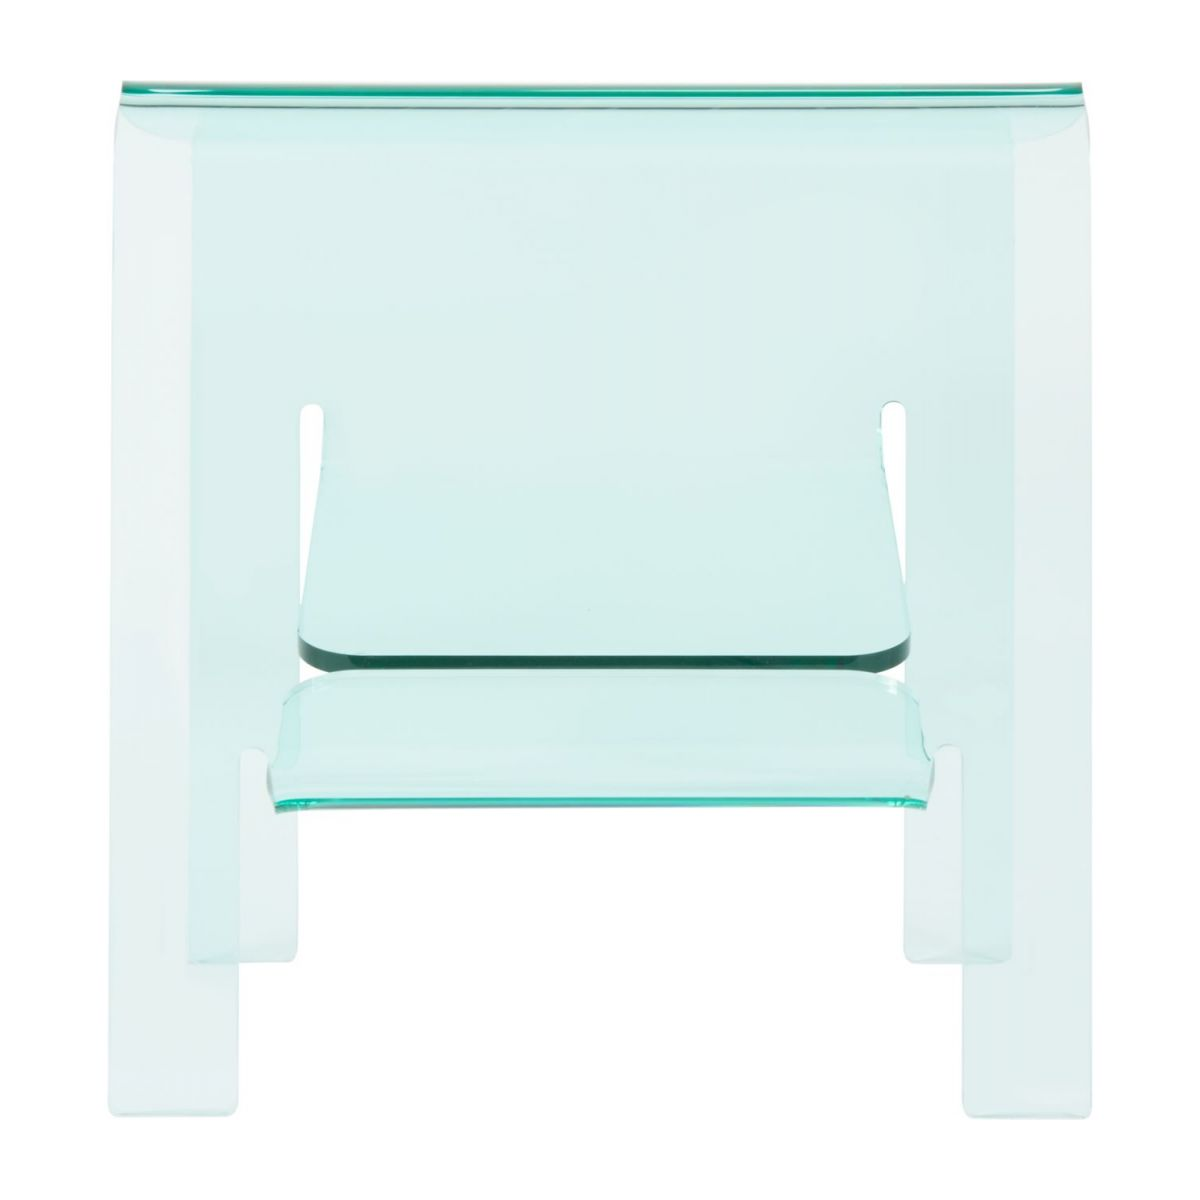 Table d'appoint en acrylique transparente n°5